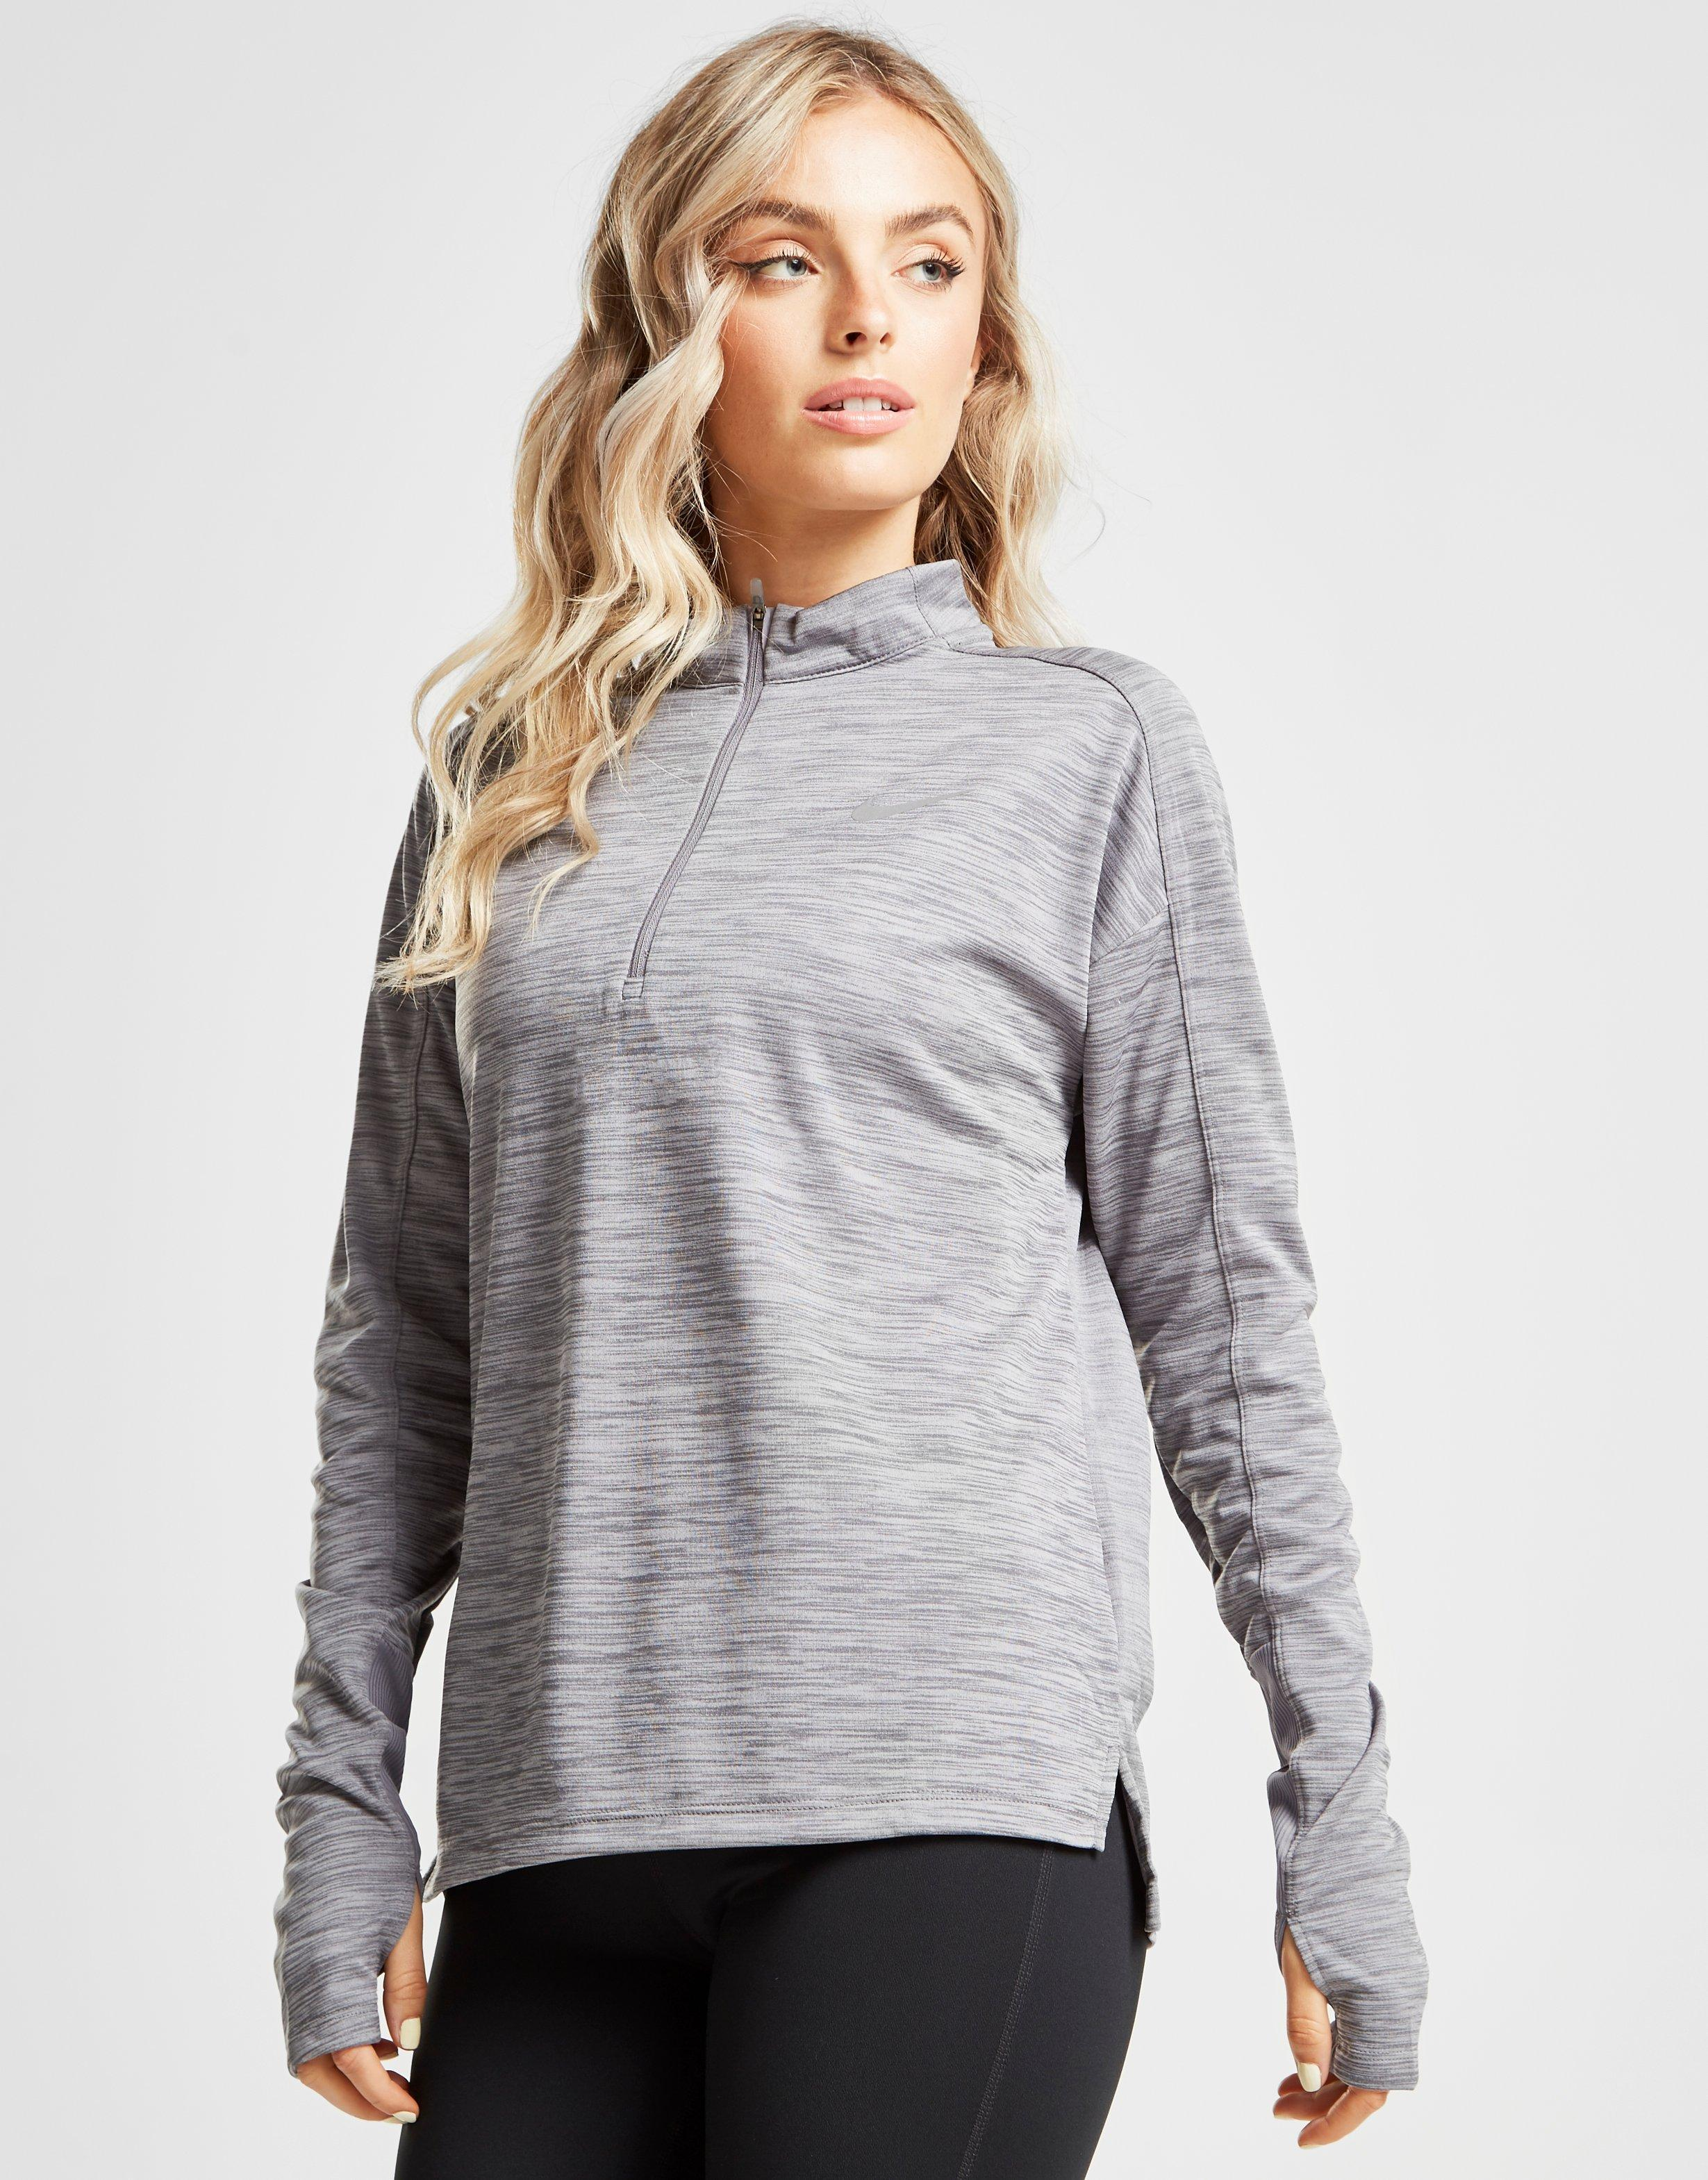 5b89380a843 Nike Running Pacer 1/4 Zip Track Top in Gray - Lyst